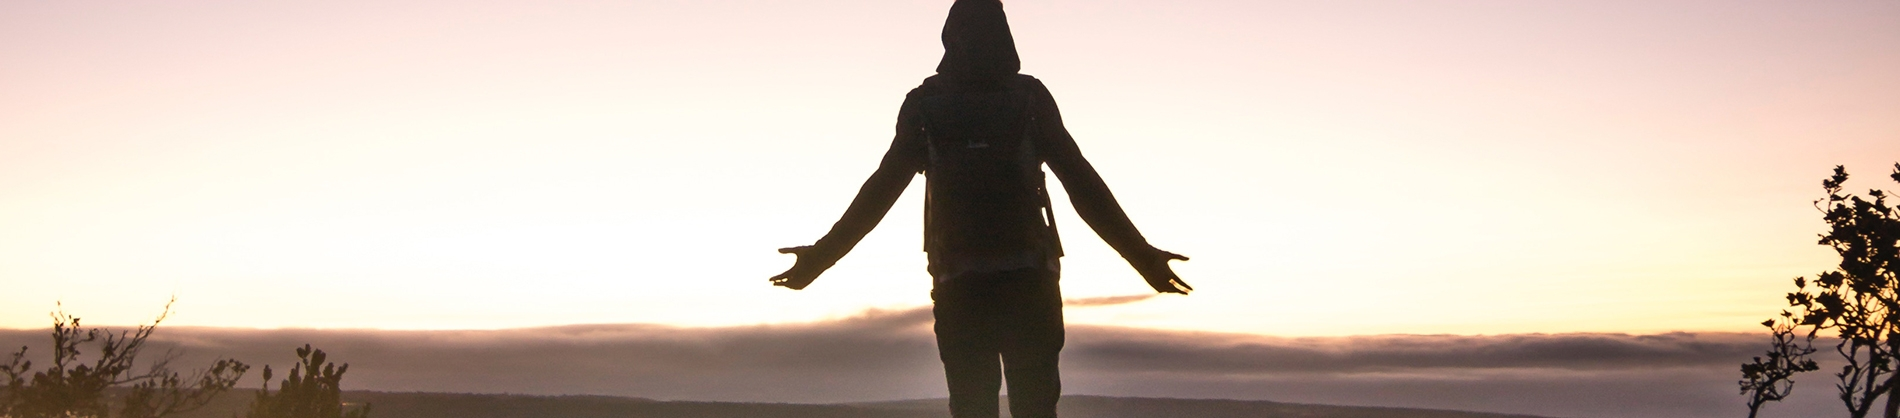 A person stood with their arms open wide looking towards a sunrise